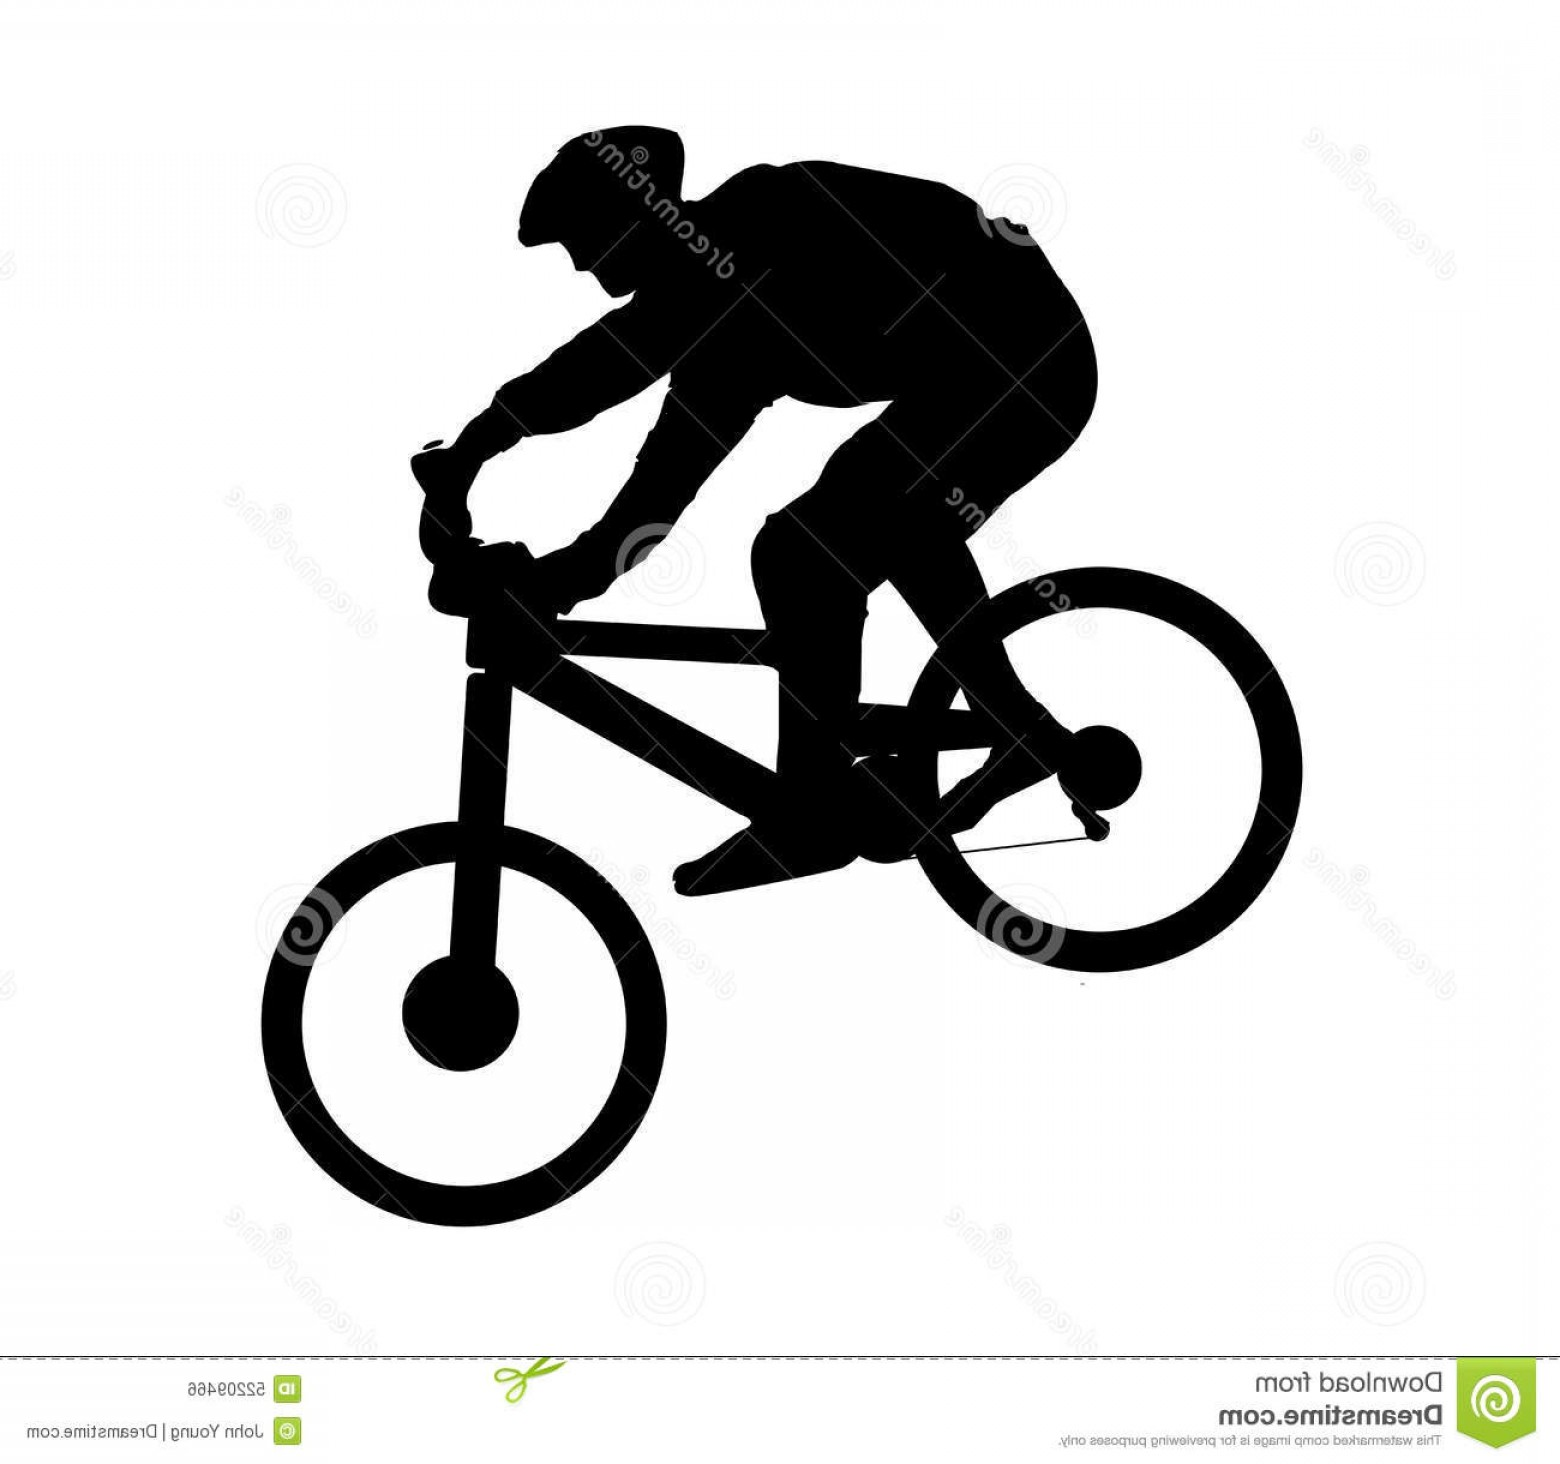 Mountain Bike Silhouette Vector: Stock Illustration Mountain Biker Silhouette Going Down Hill Vector Format Can Be Re Sized Re Colored Image